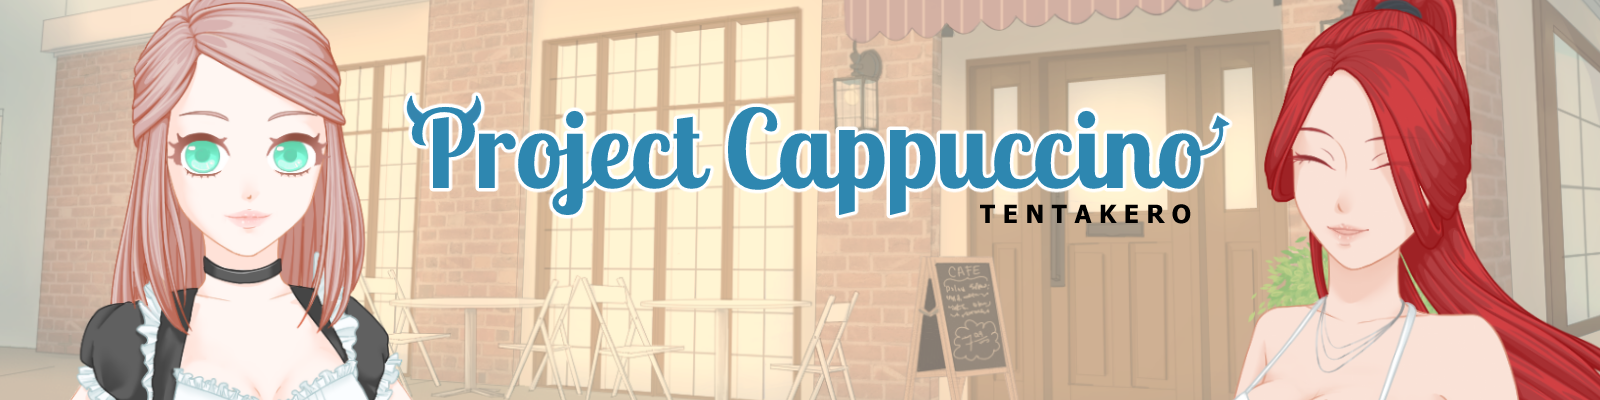 Project Cappuccino Demo